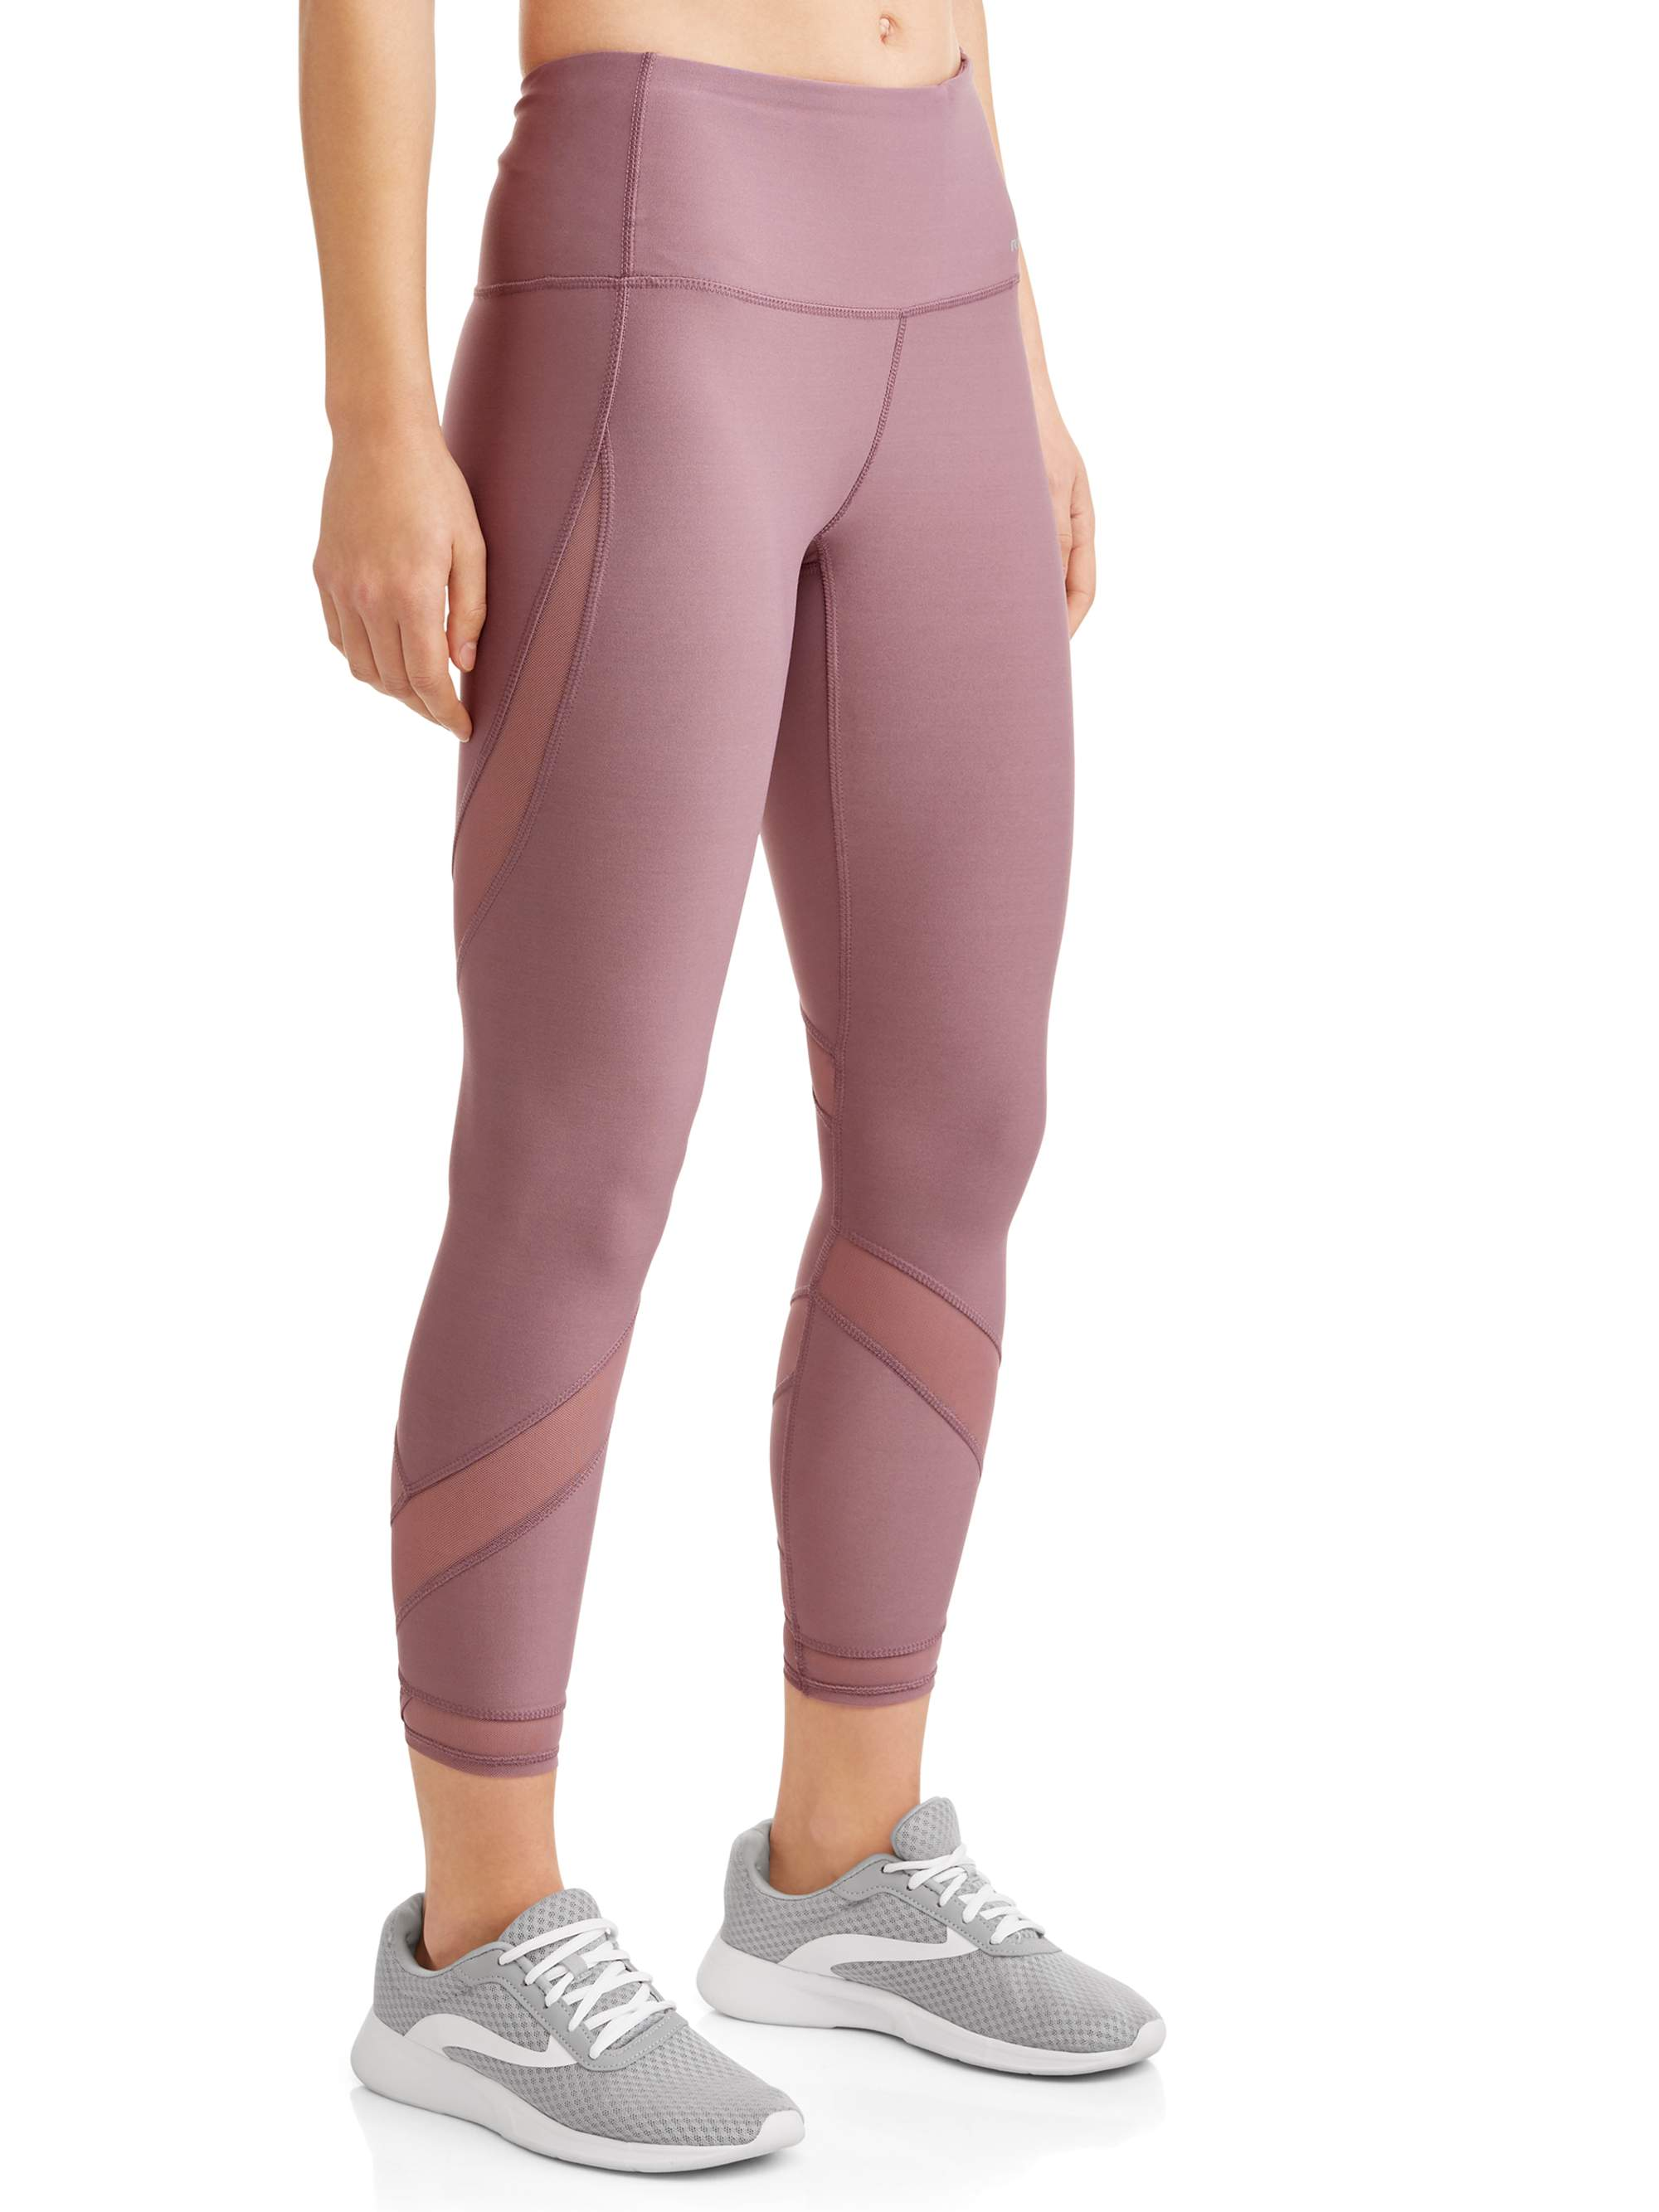 Women's Active 7/8 Ankle Power Mesh Legging